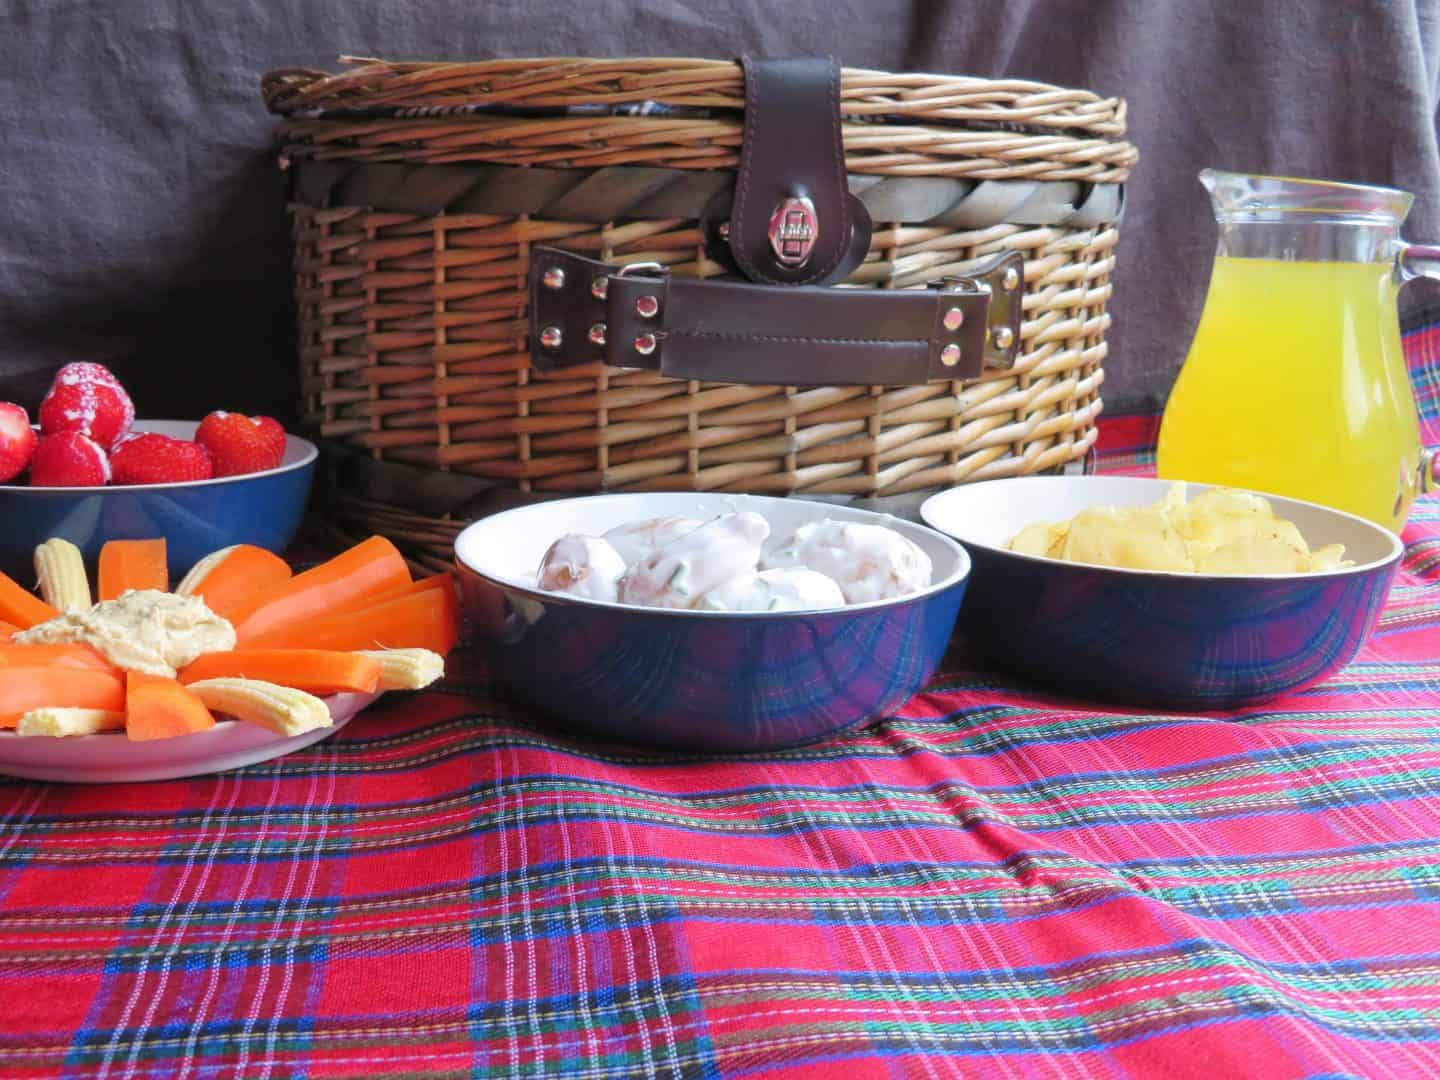 An indoor picnic with Tesco Jersey Royal New Potatoes